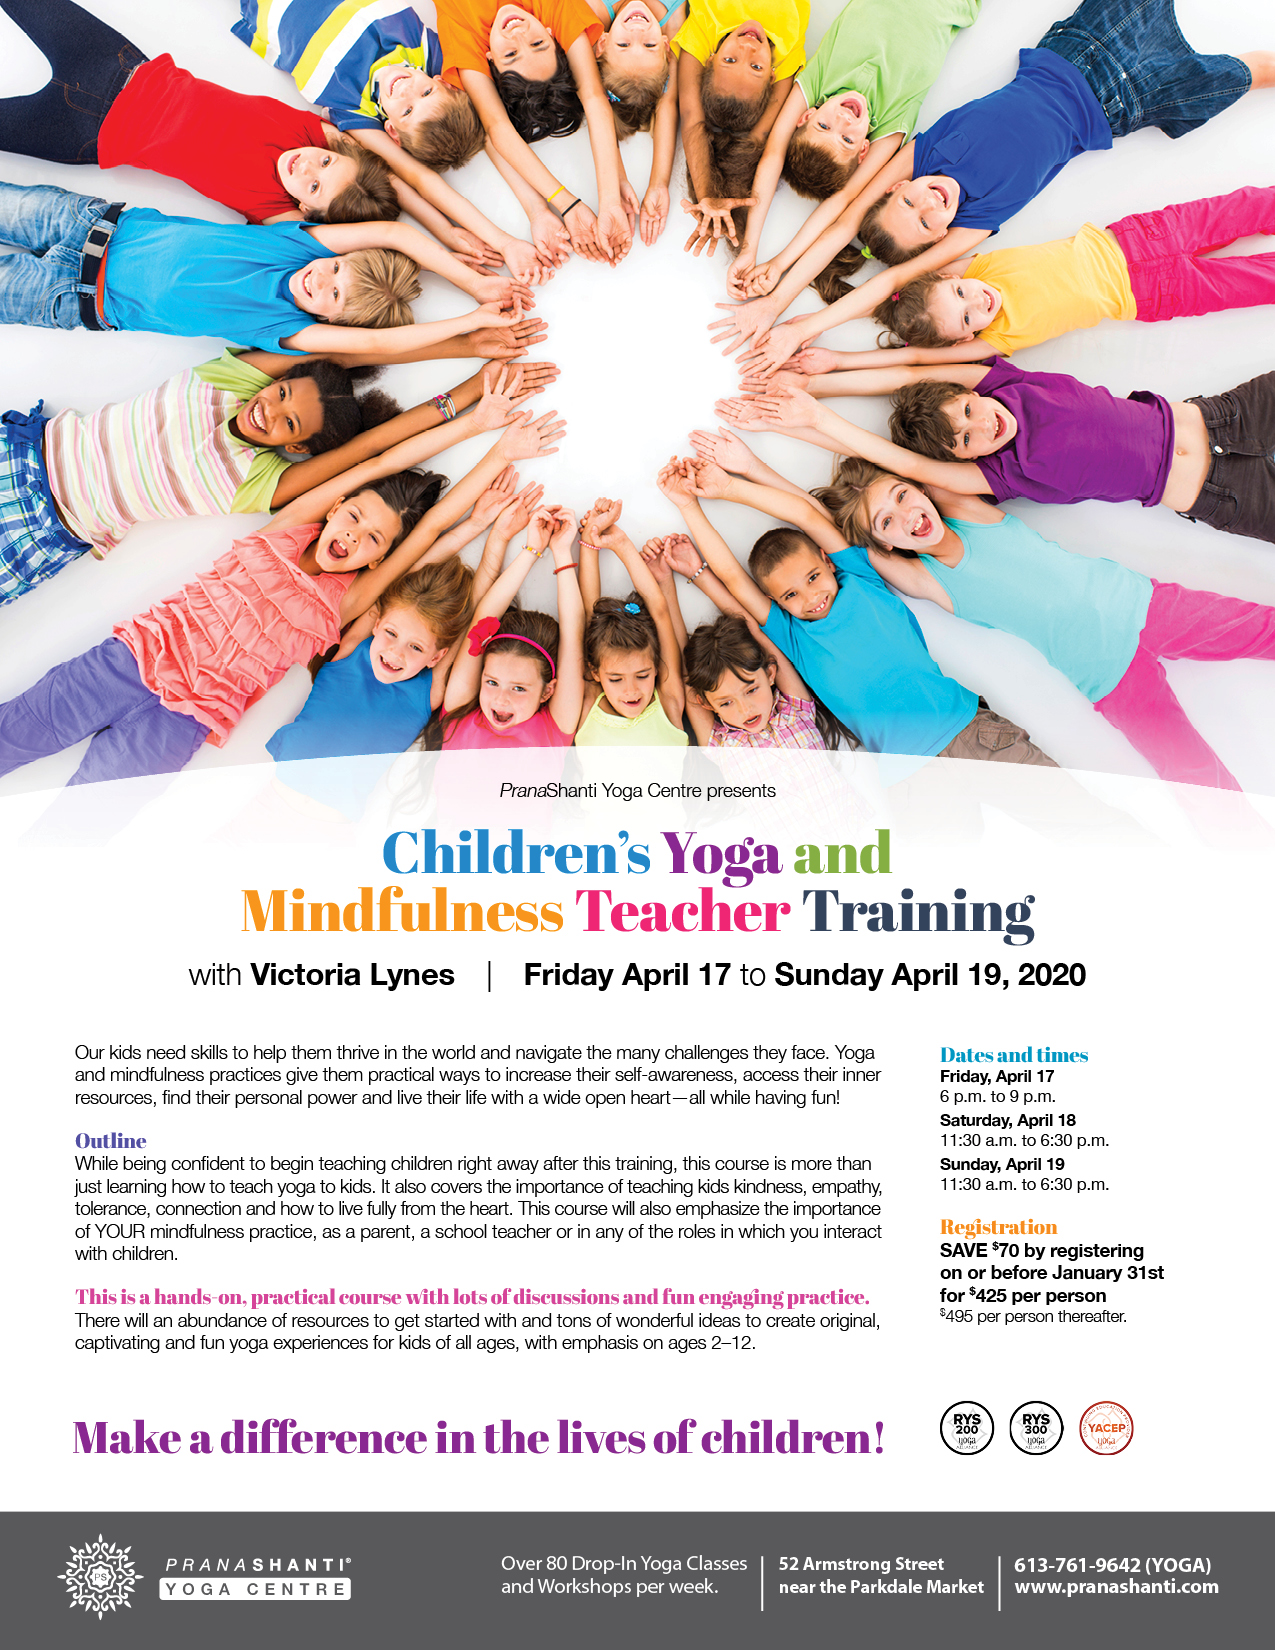 Children's Yoga and Mindfulness Teacher Training - PranaShanti Yoga